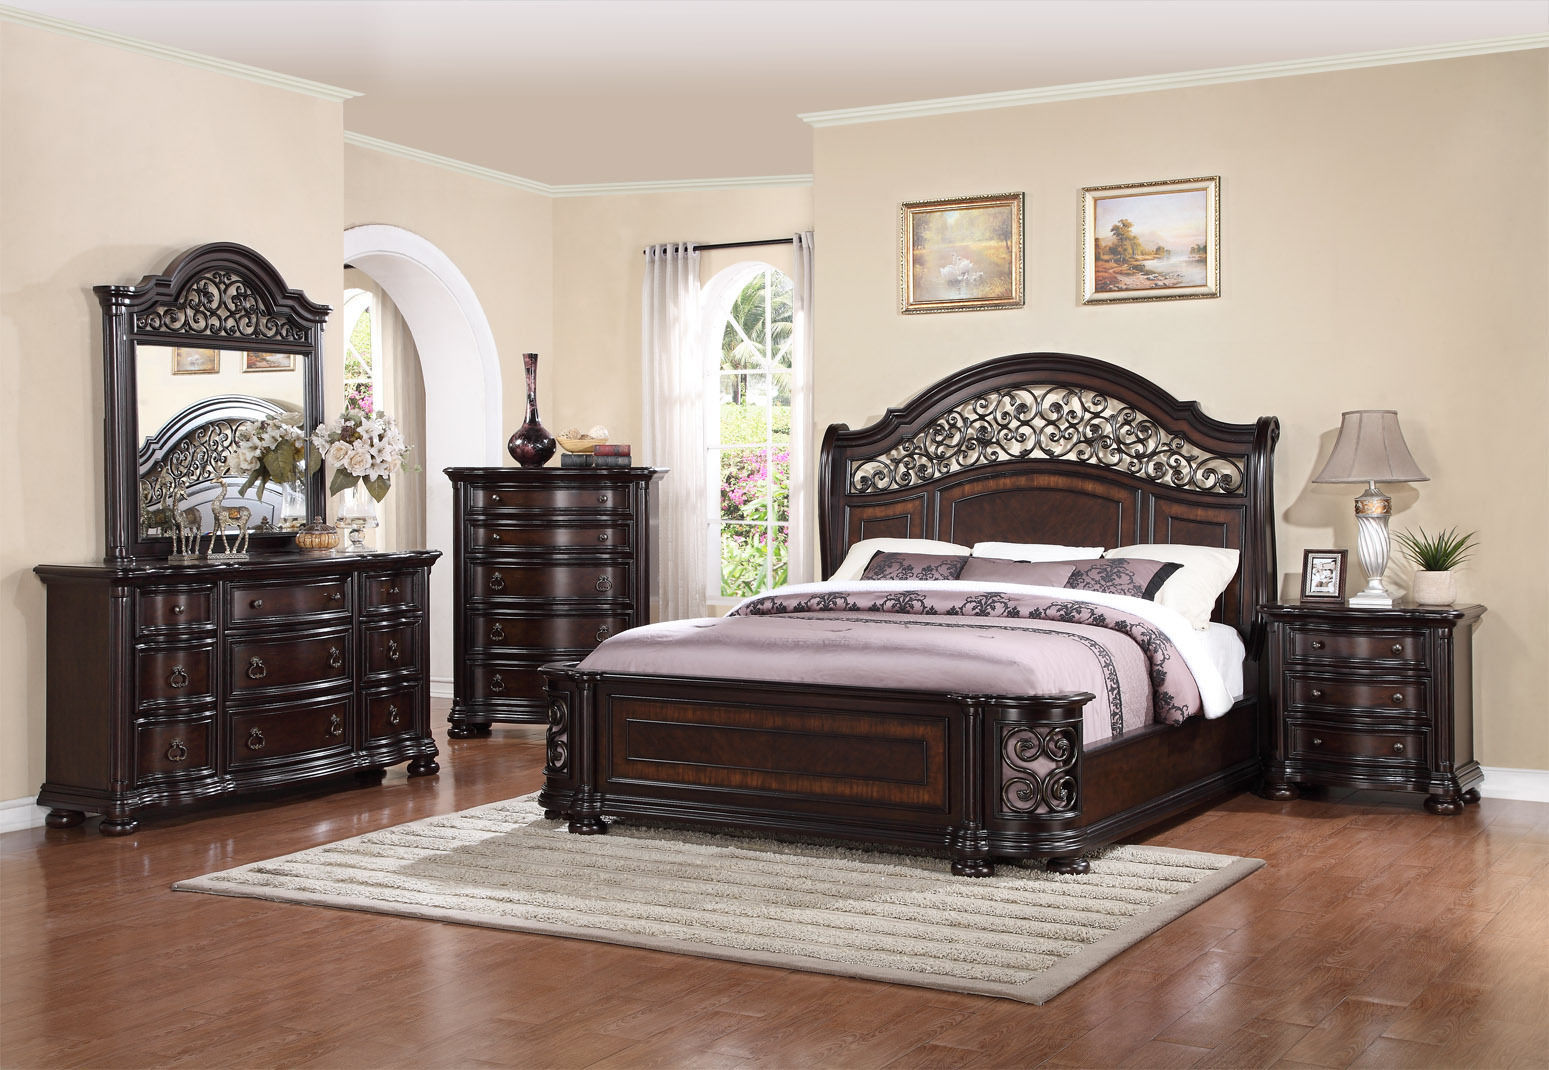 Mcferran RB366 Allison California King Size Bedroom set 3.pc Traditional Style